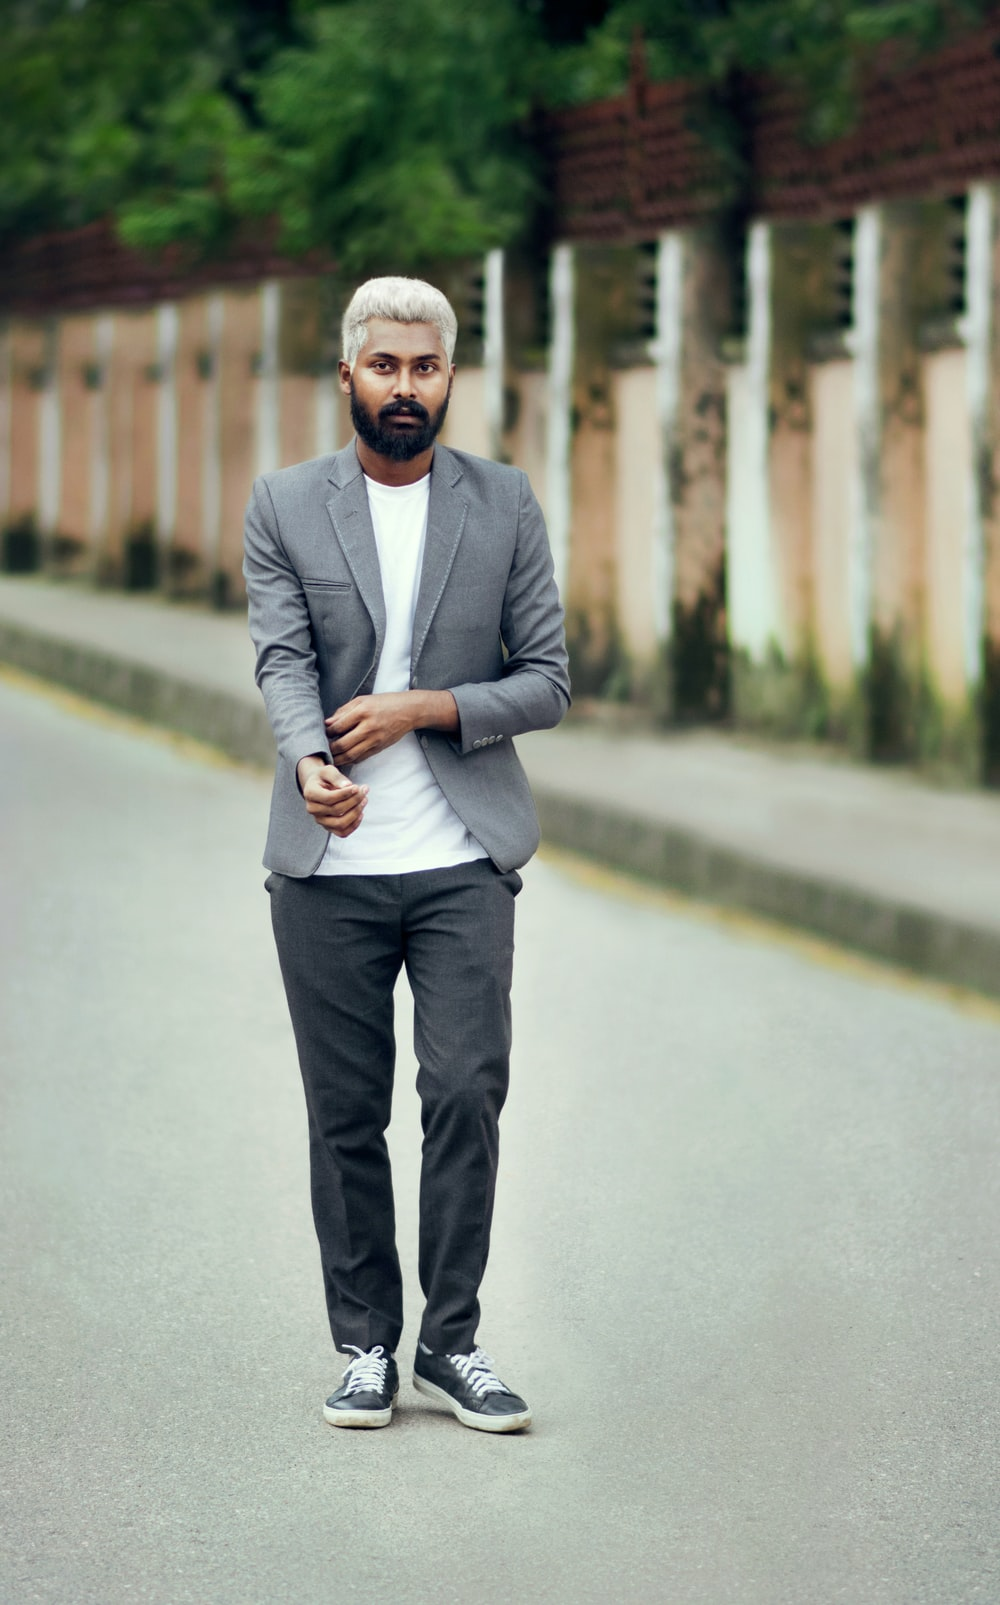 man in gray suit standing on gray concrete road during daytime